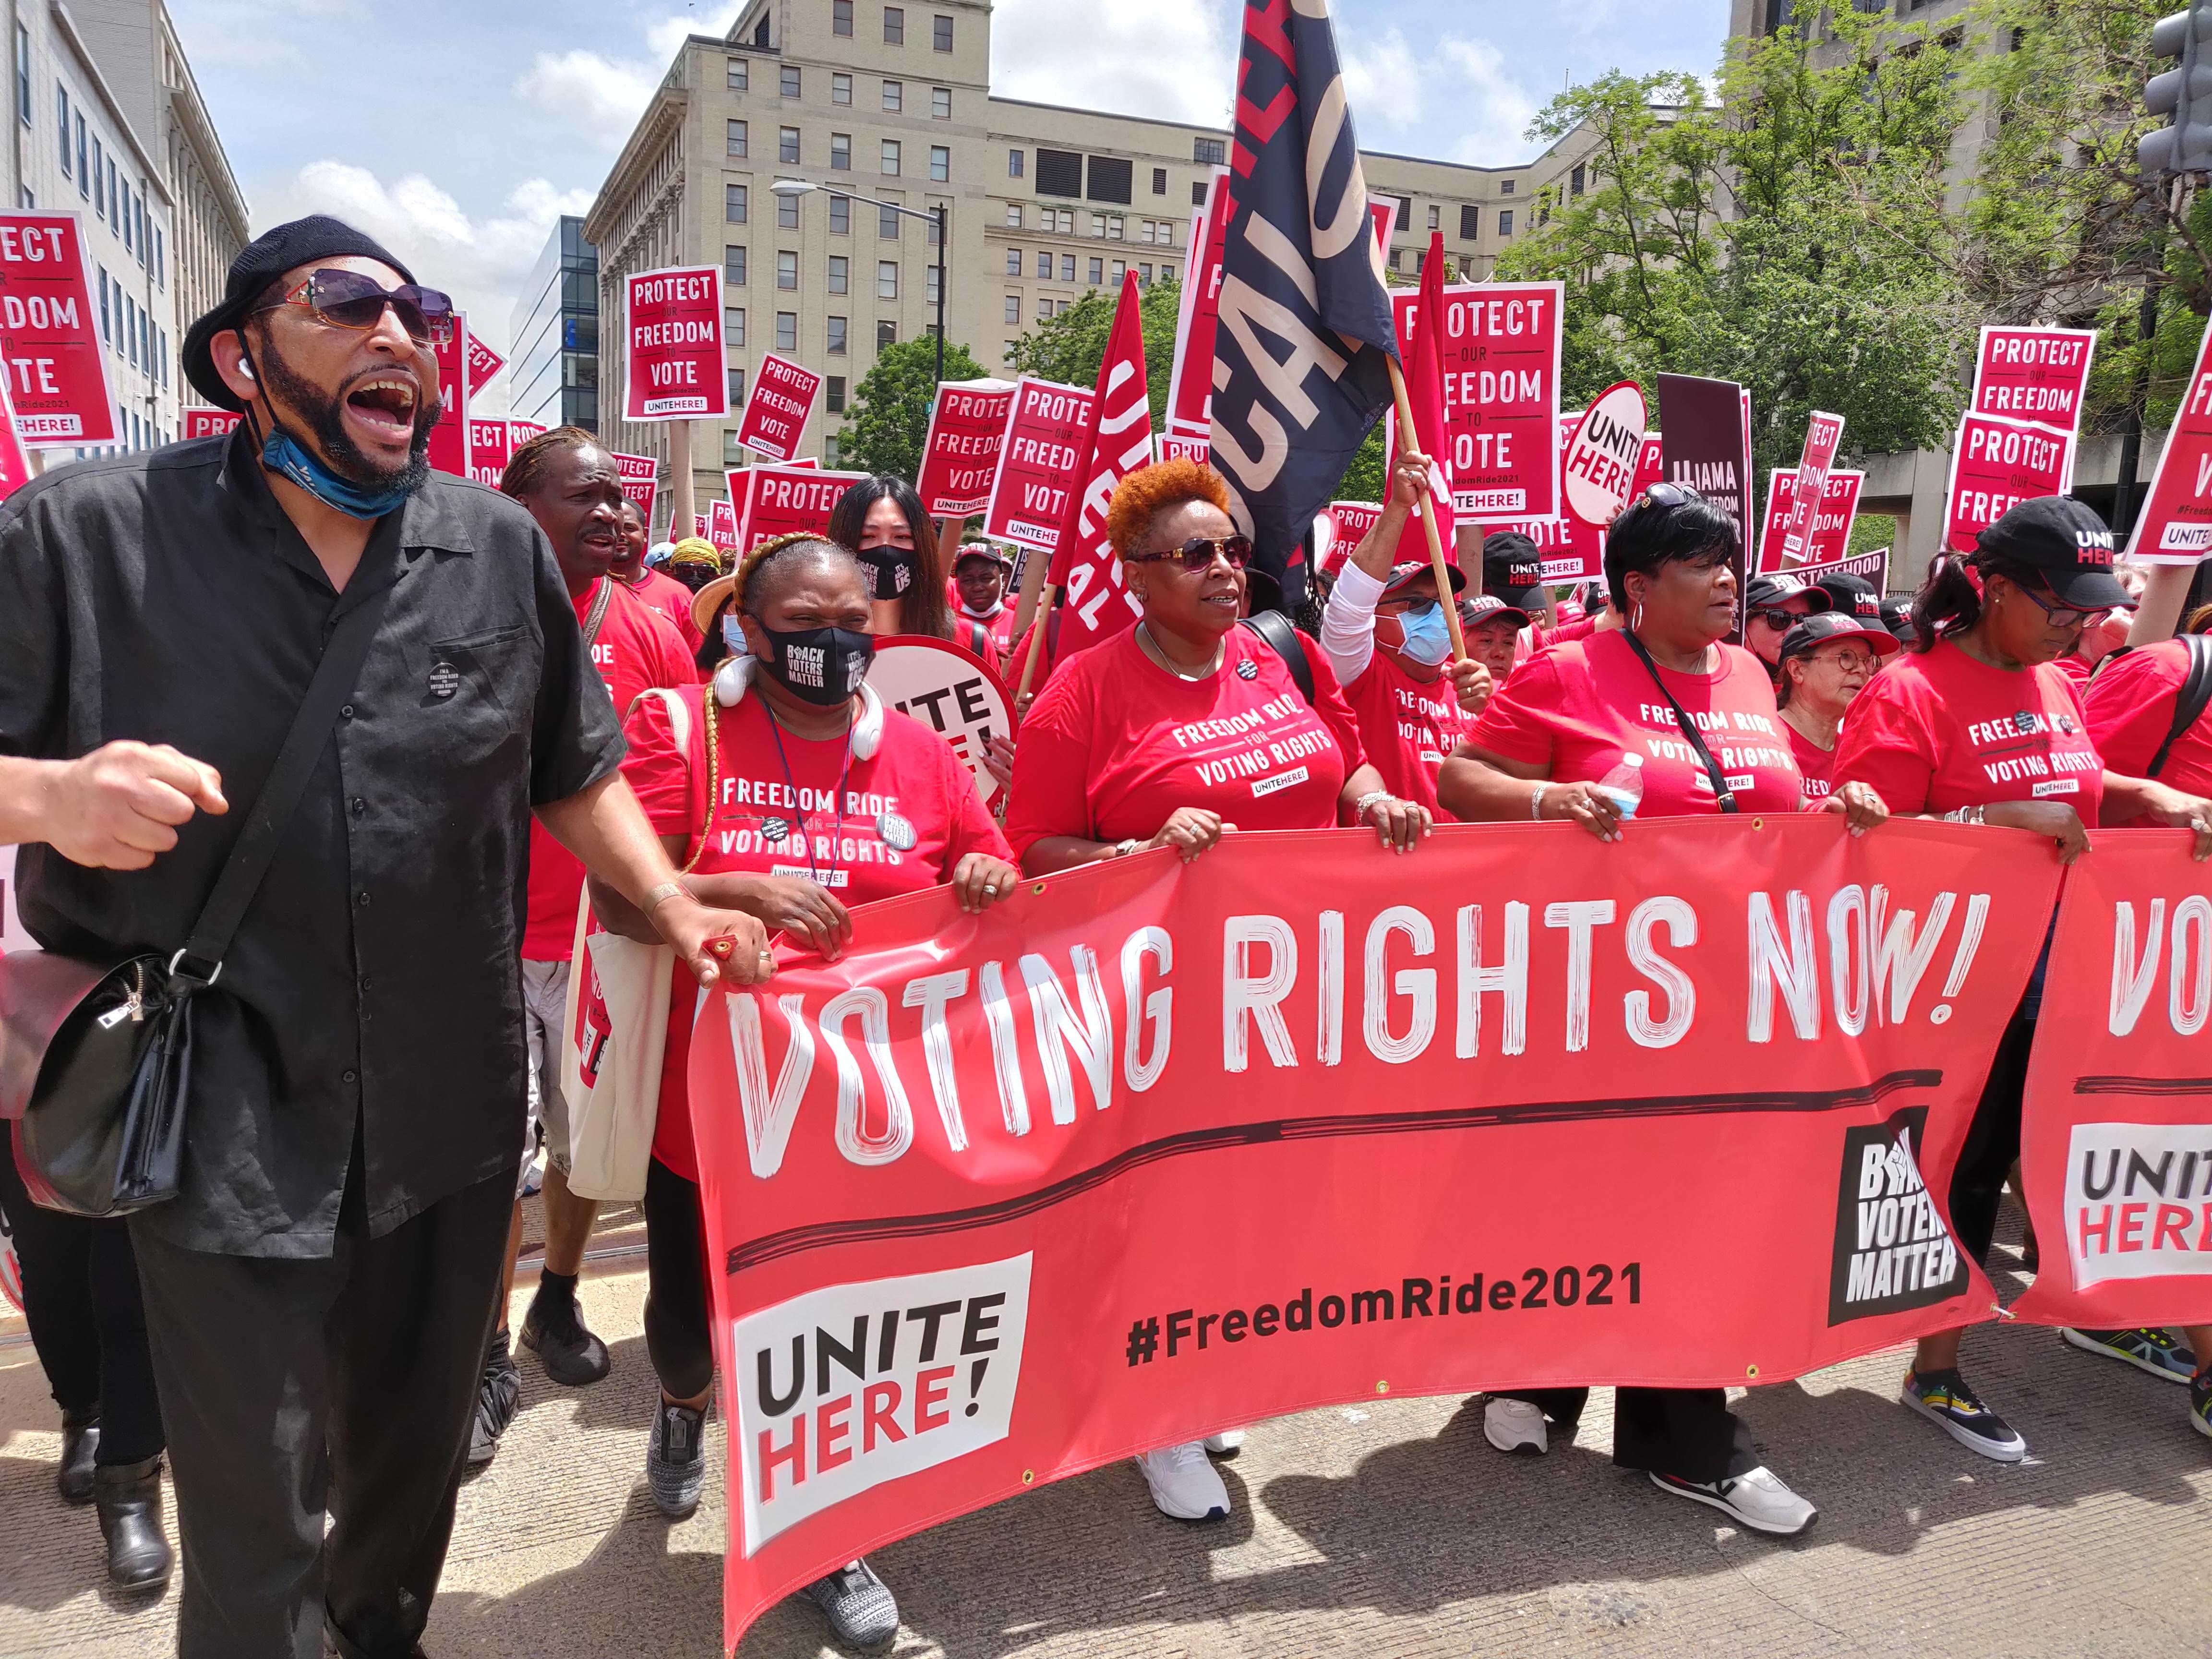 Mass D.C. rally speakers: Freedom Riders intensify voting rights drive